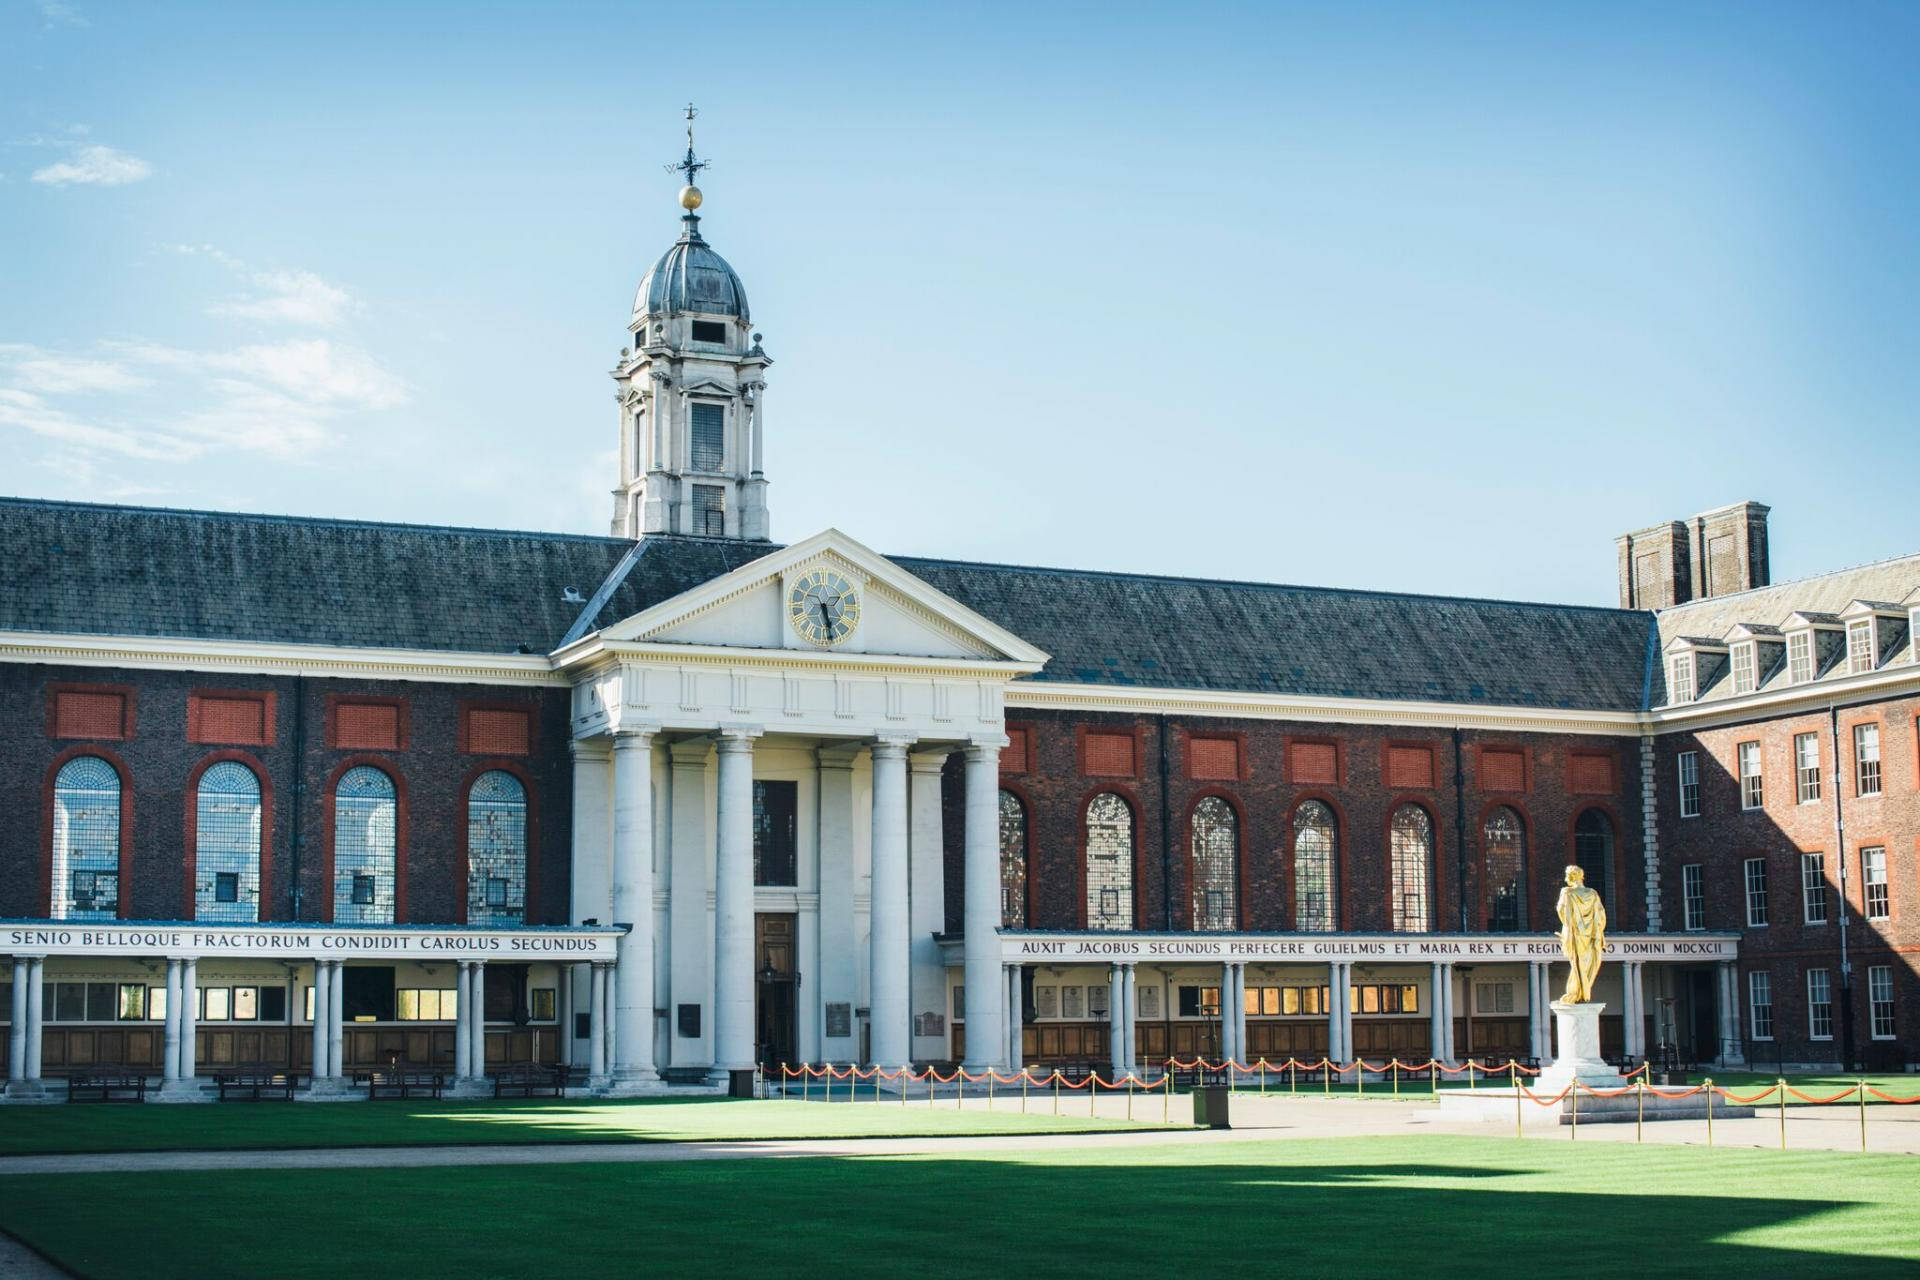 Royal Hospital Chelsea | Venue Hire London | Unique Venues of London